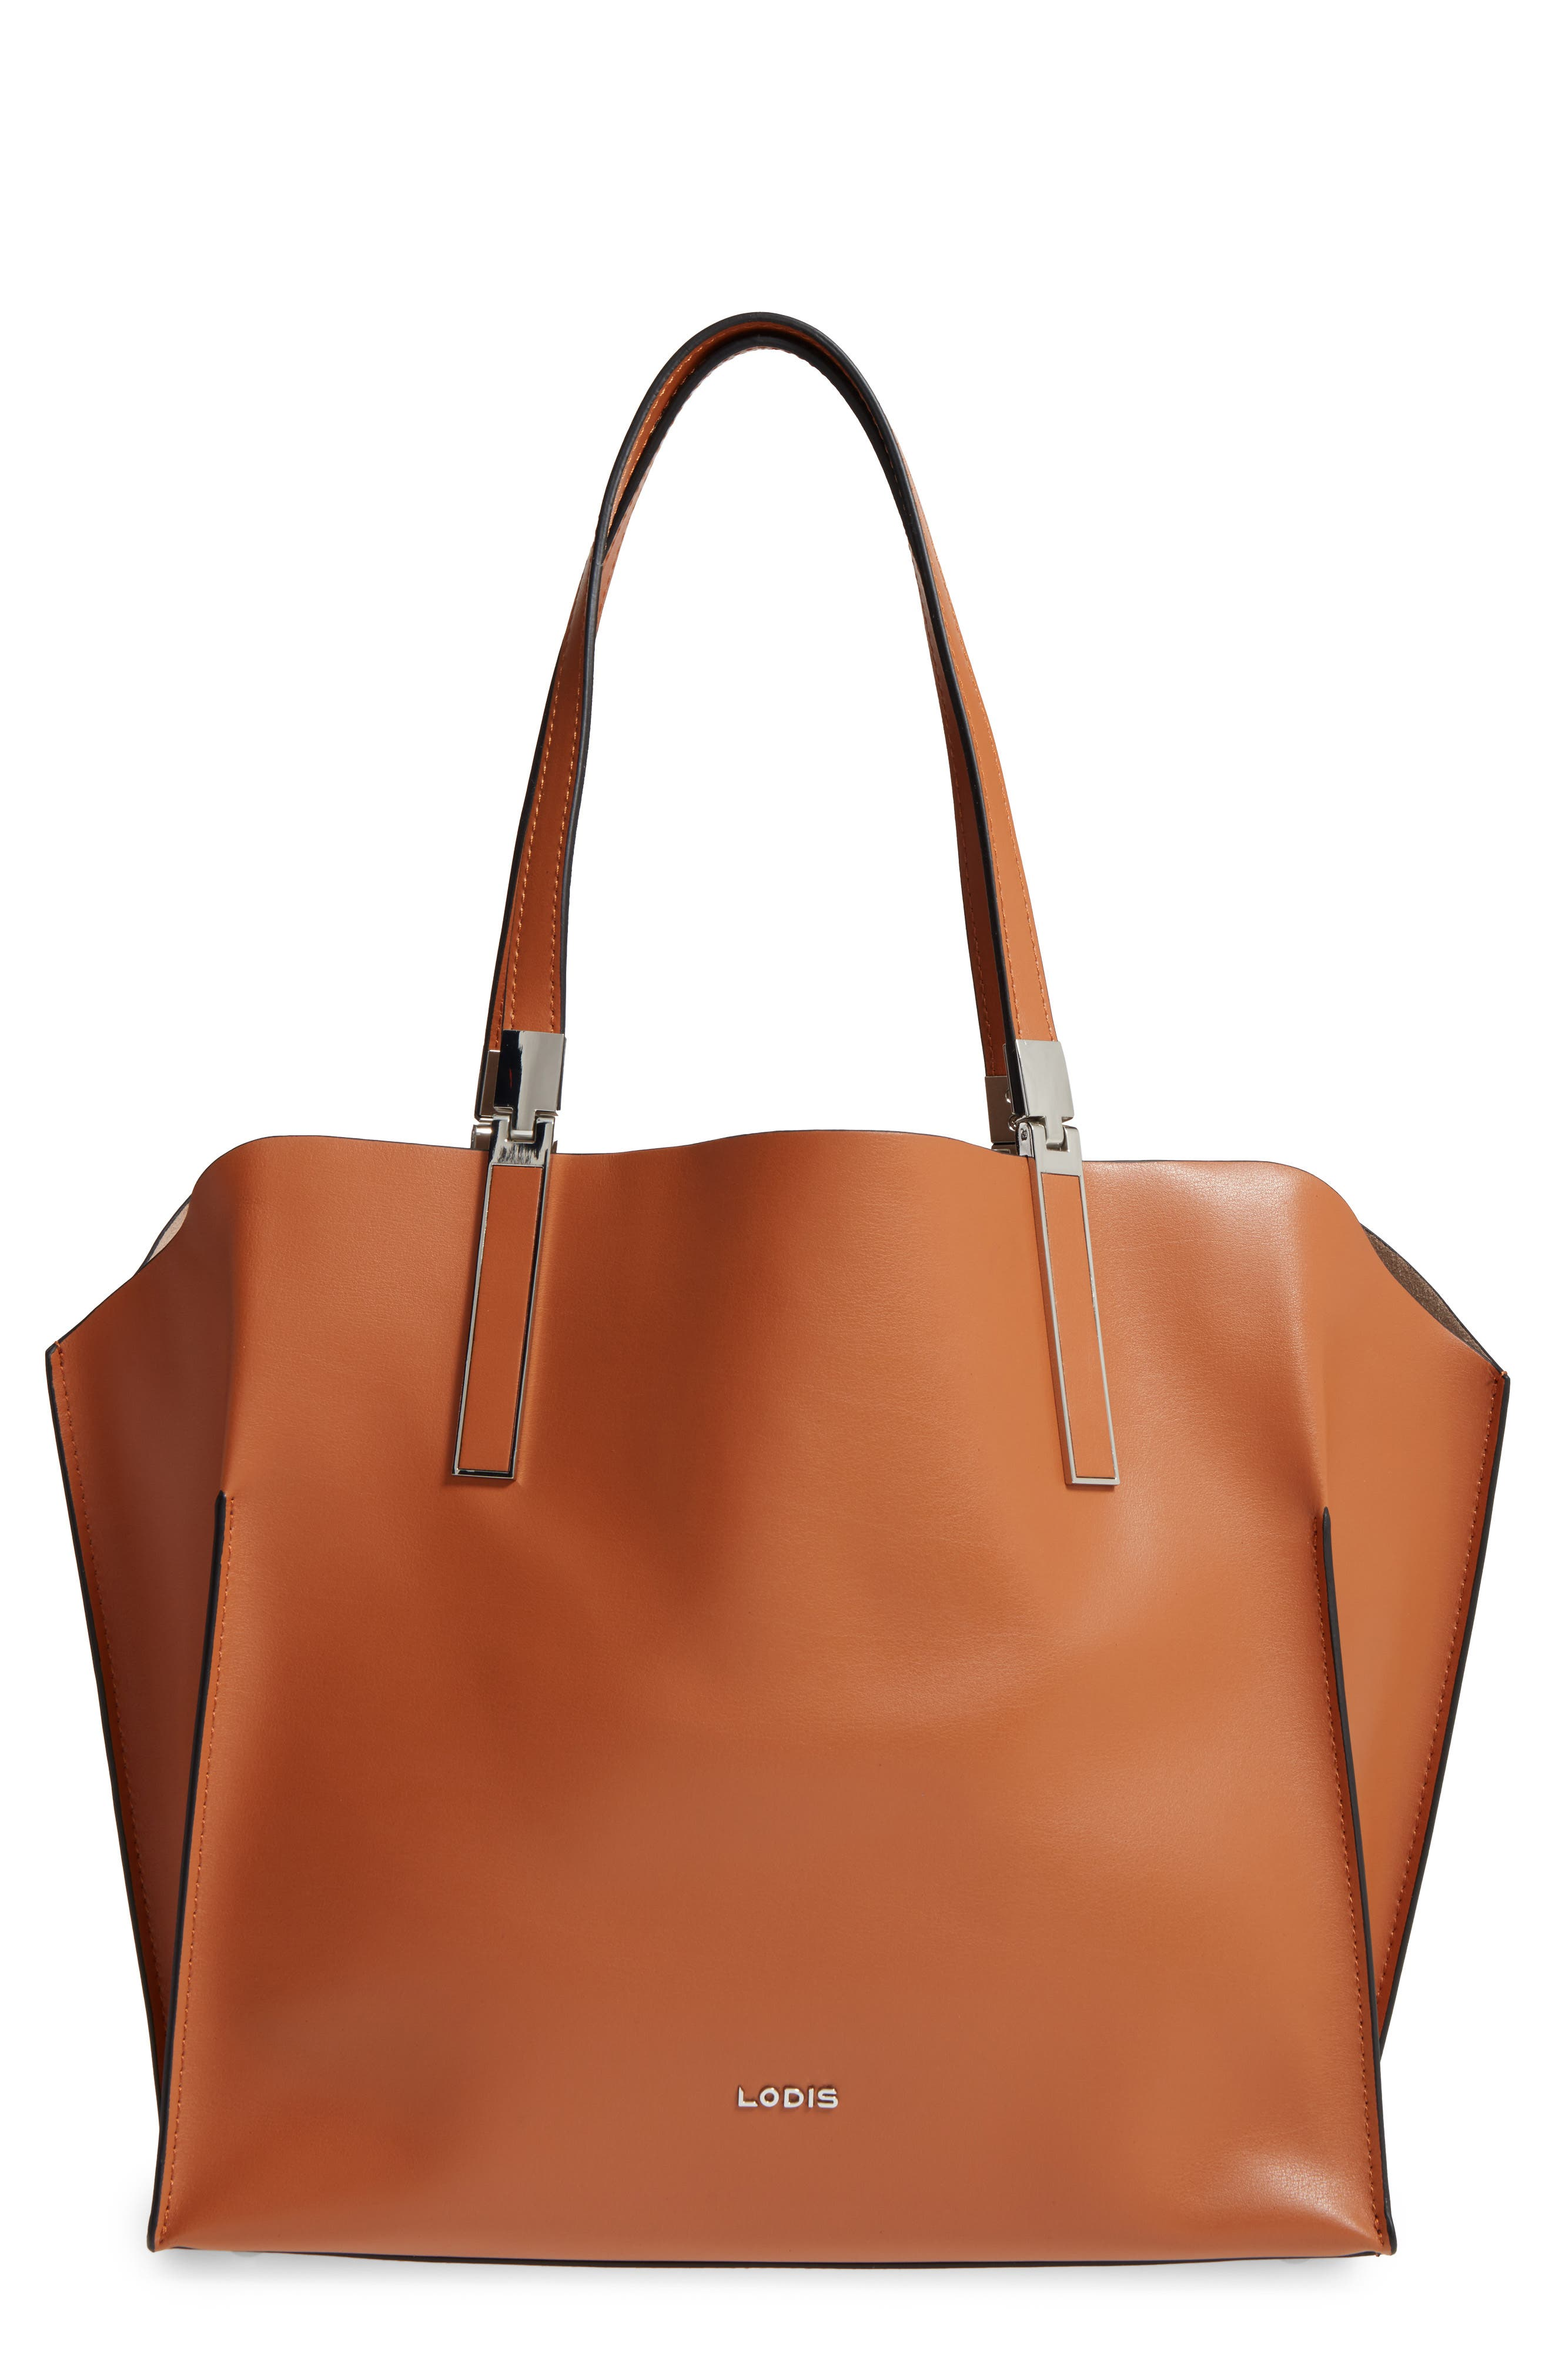 Alternate Image 1 Selected - Lodis 'Blair Collection - Anita' Leather Tote